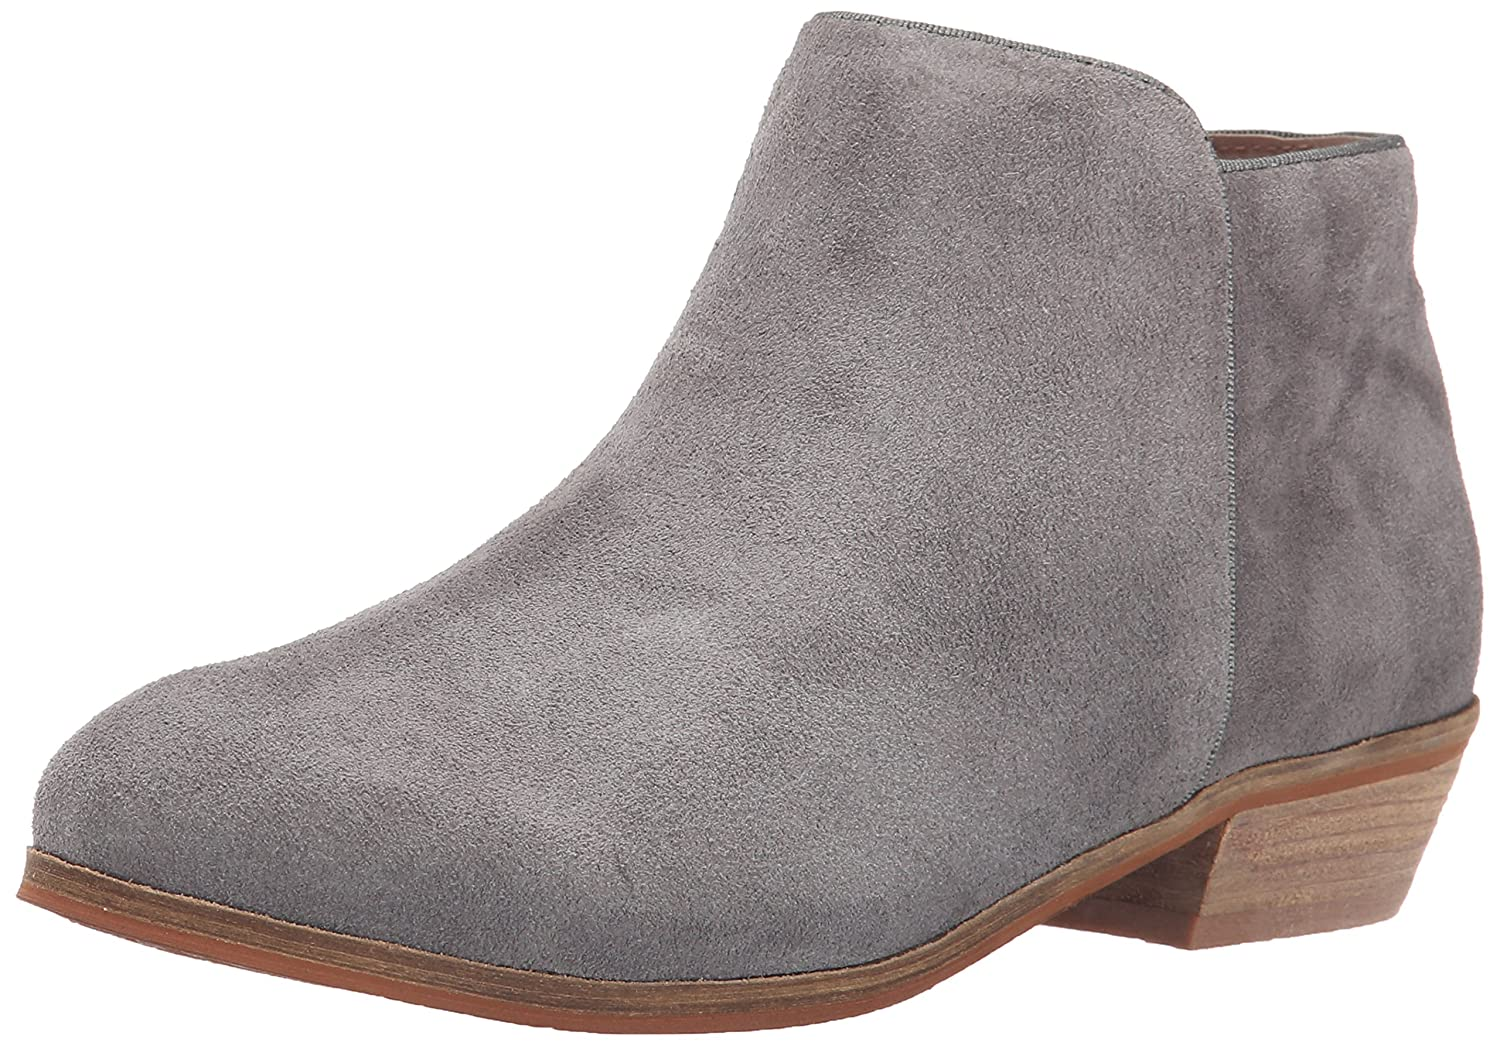 SoftWalk Women's Rocklin Chelsea Boot B00S05JJ4A 5.5 B(M) US|Graphite